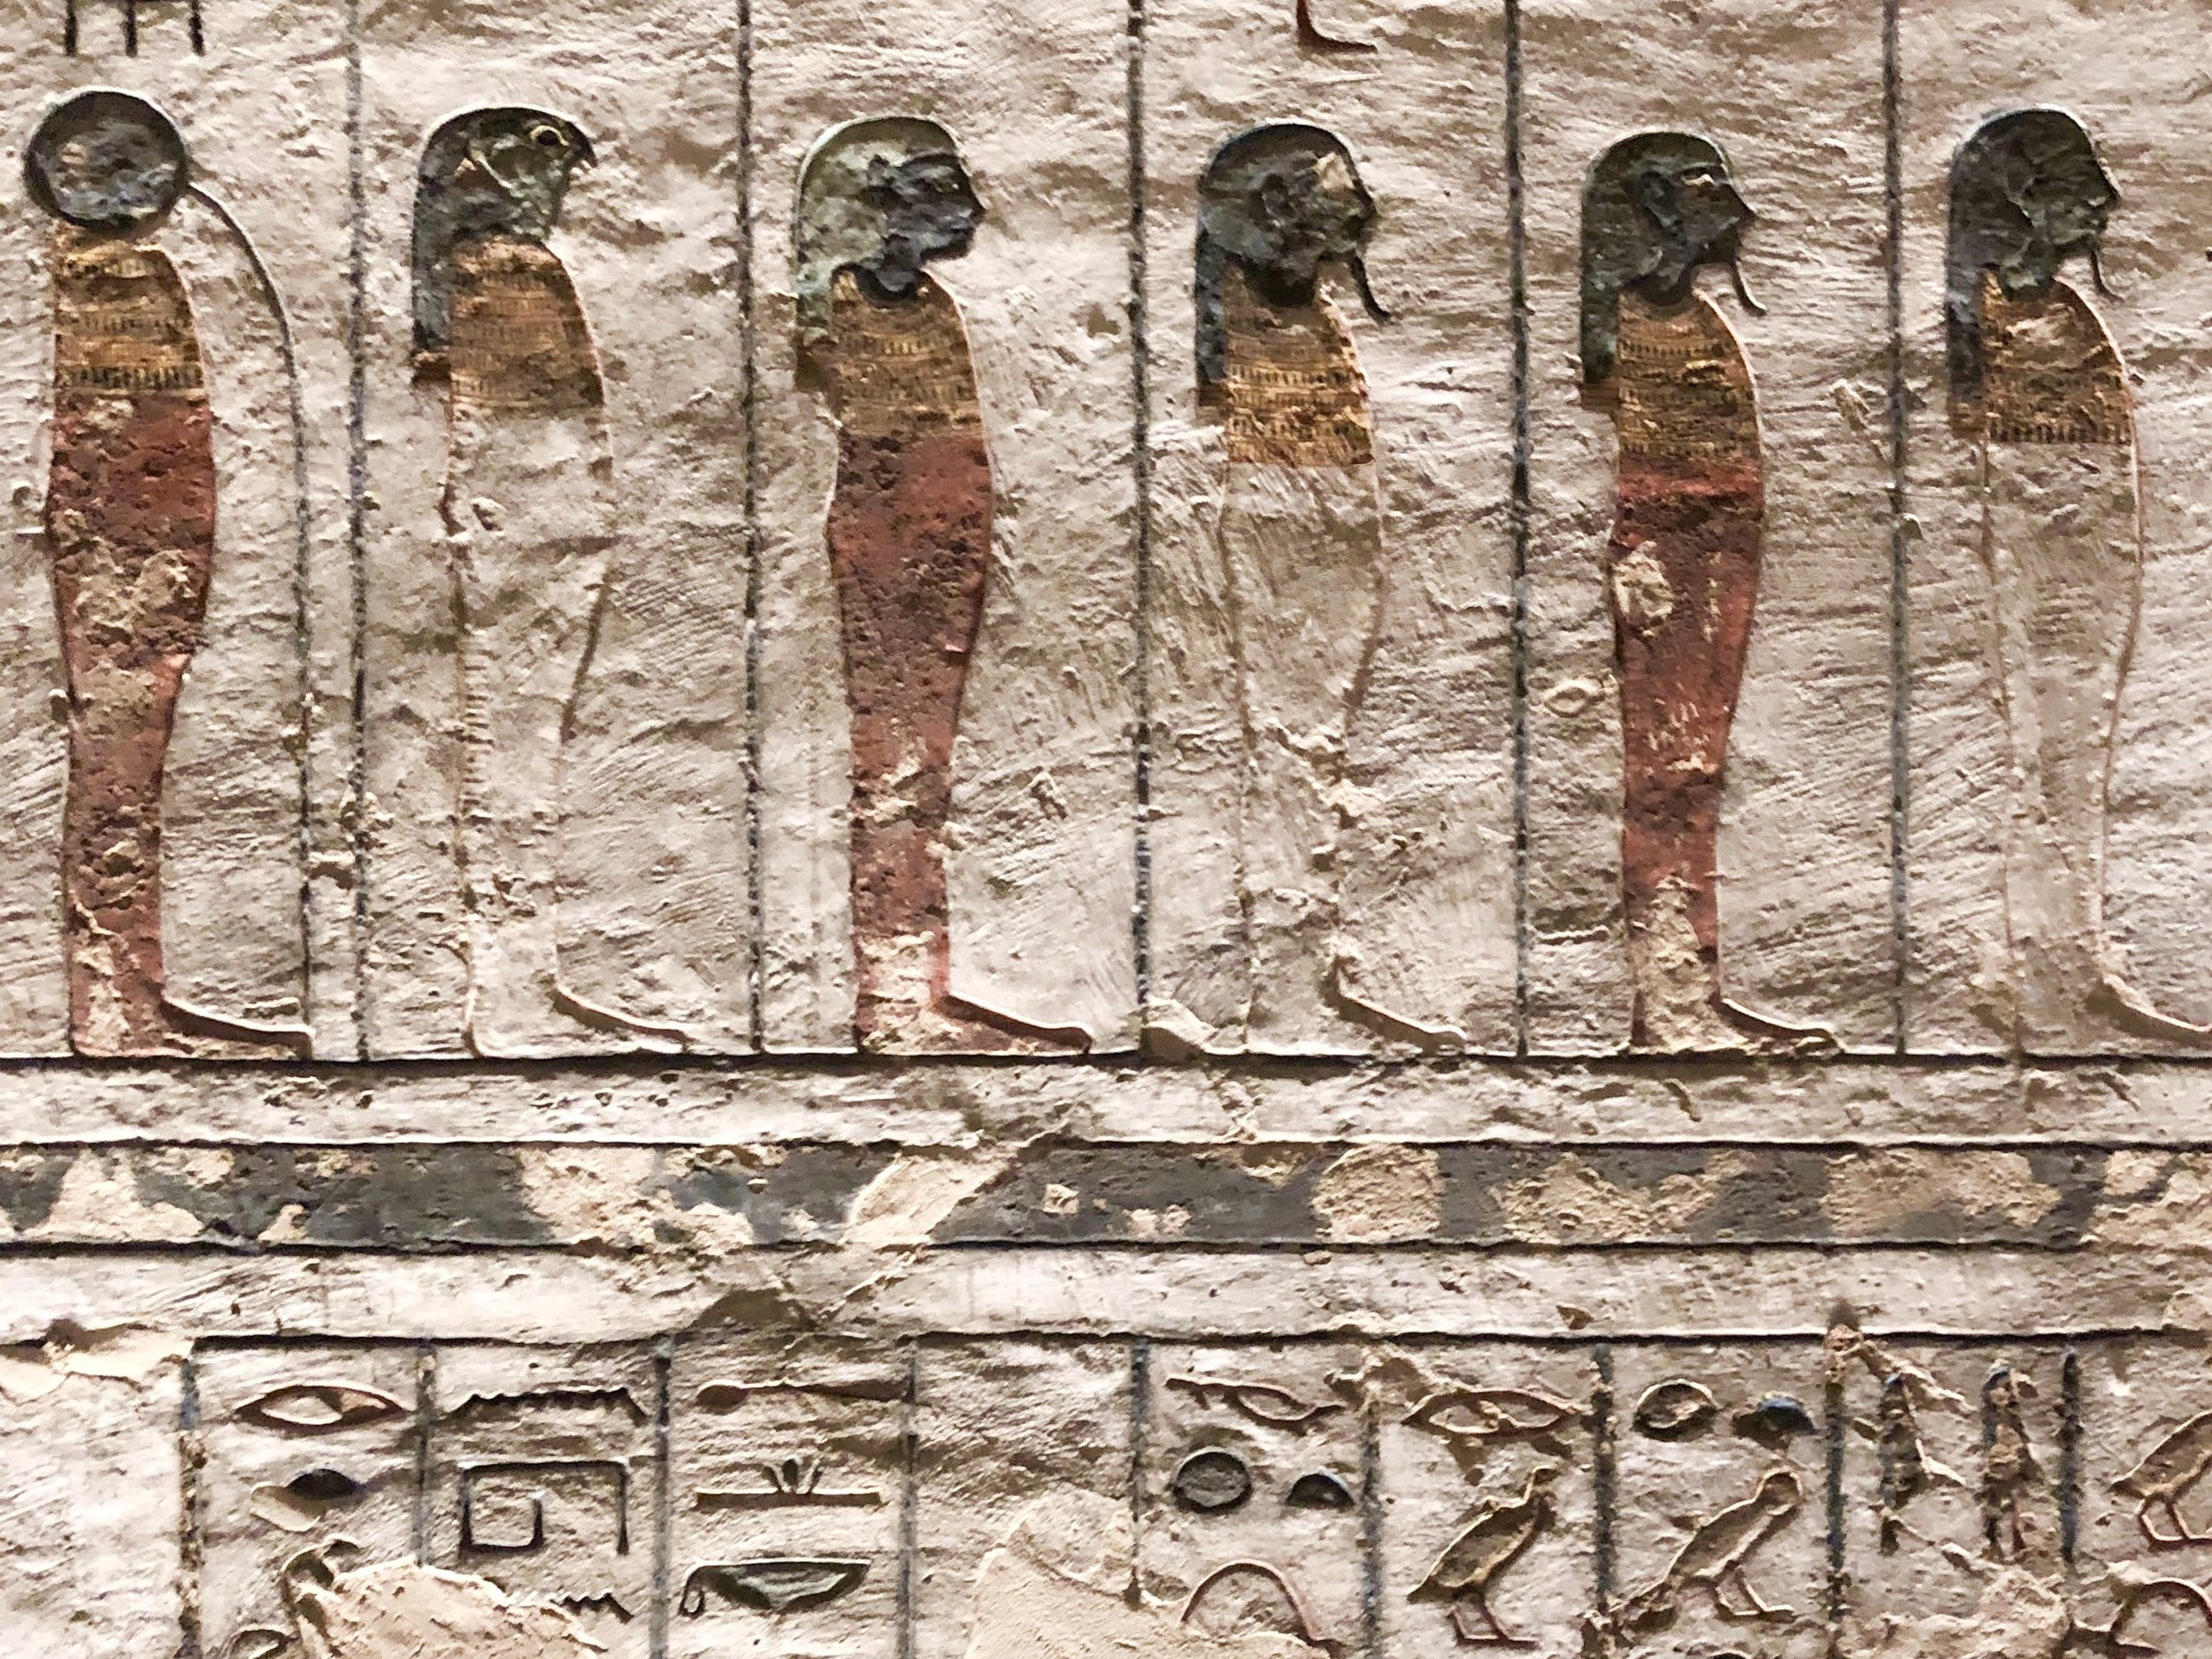 Just some of the 74 depictions of the sun god Ra seen in the tomb